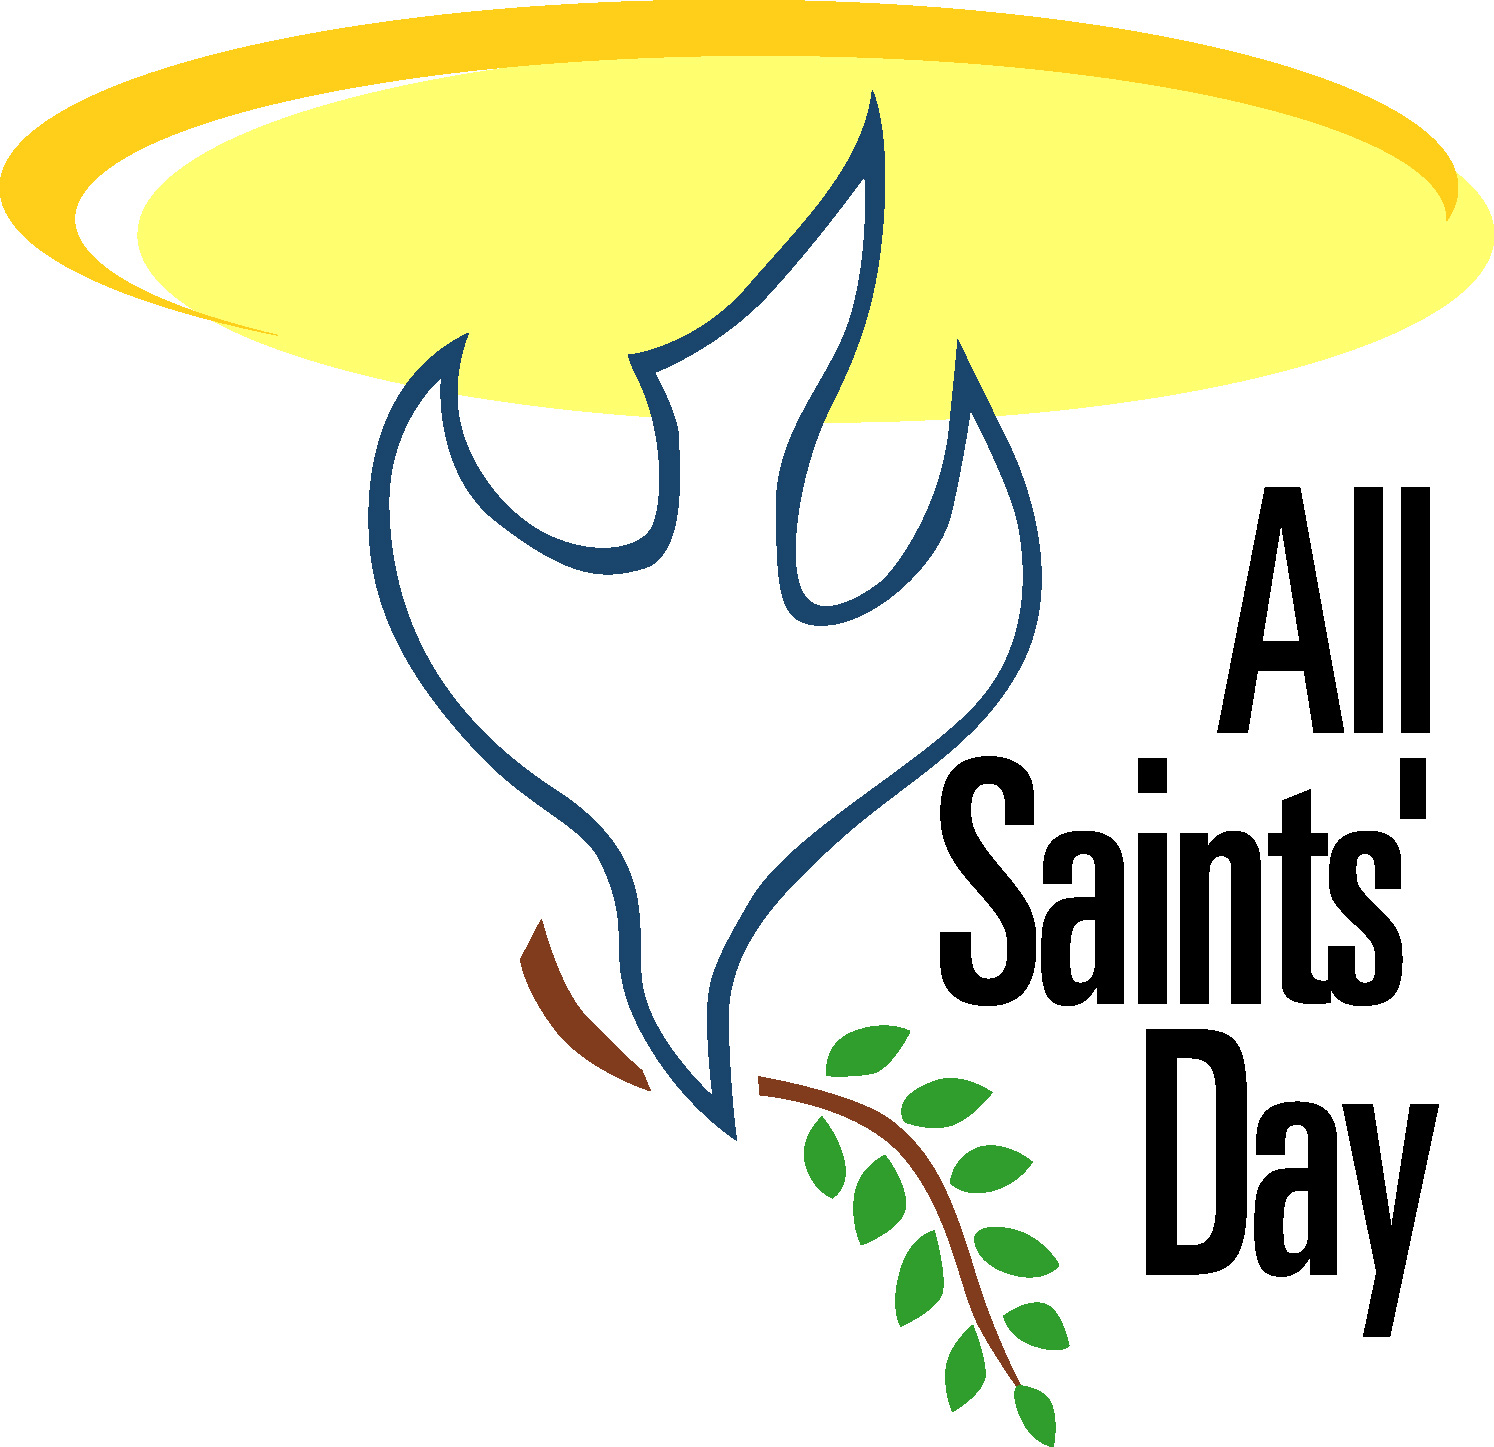 All saints day observance new life united methodist church all saints day observance biocorpaavc Gallery